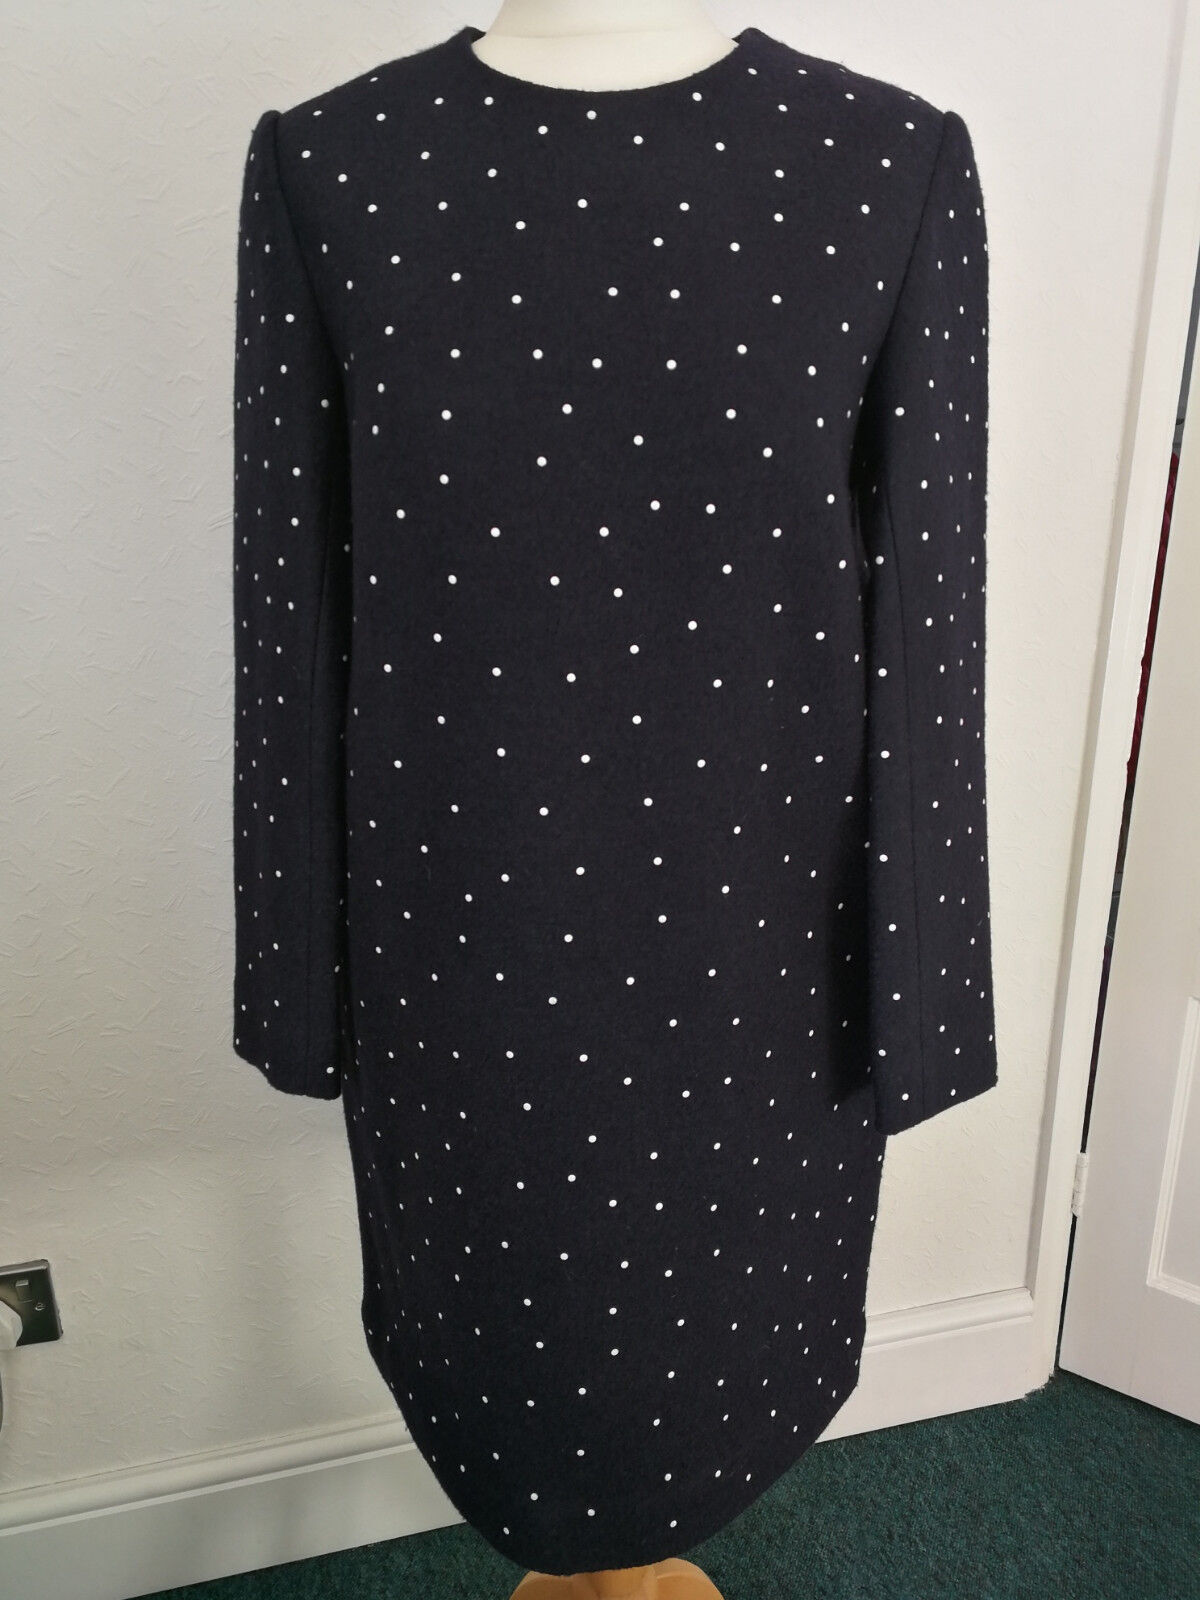 COS NAVY BOILED WOOL SHIFT DRESS WHITE SPOTS LONG SLEEVE WINTER 40 EU M UK